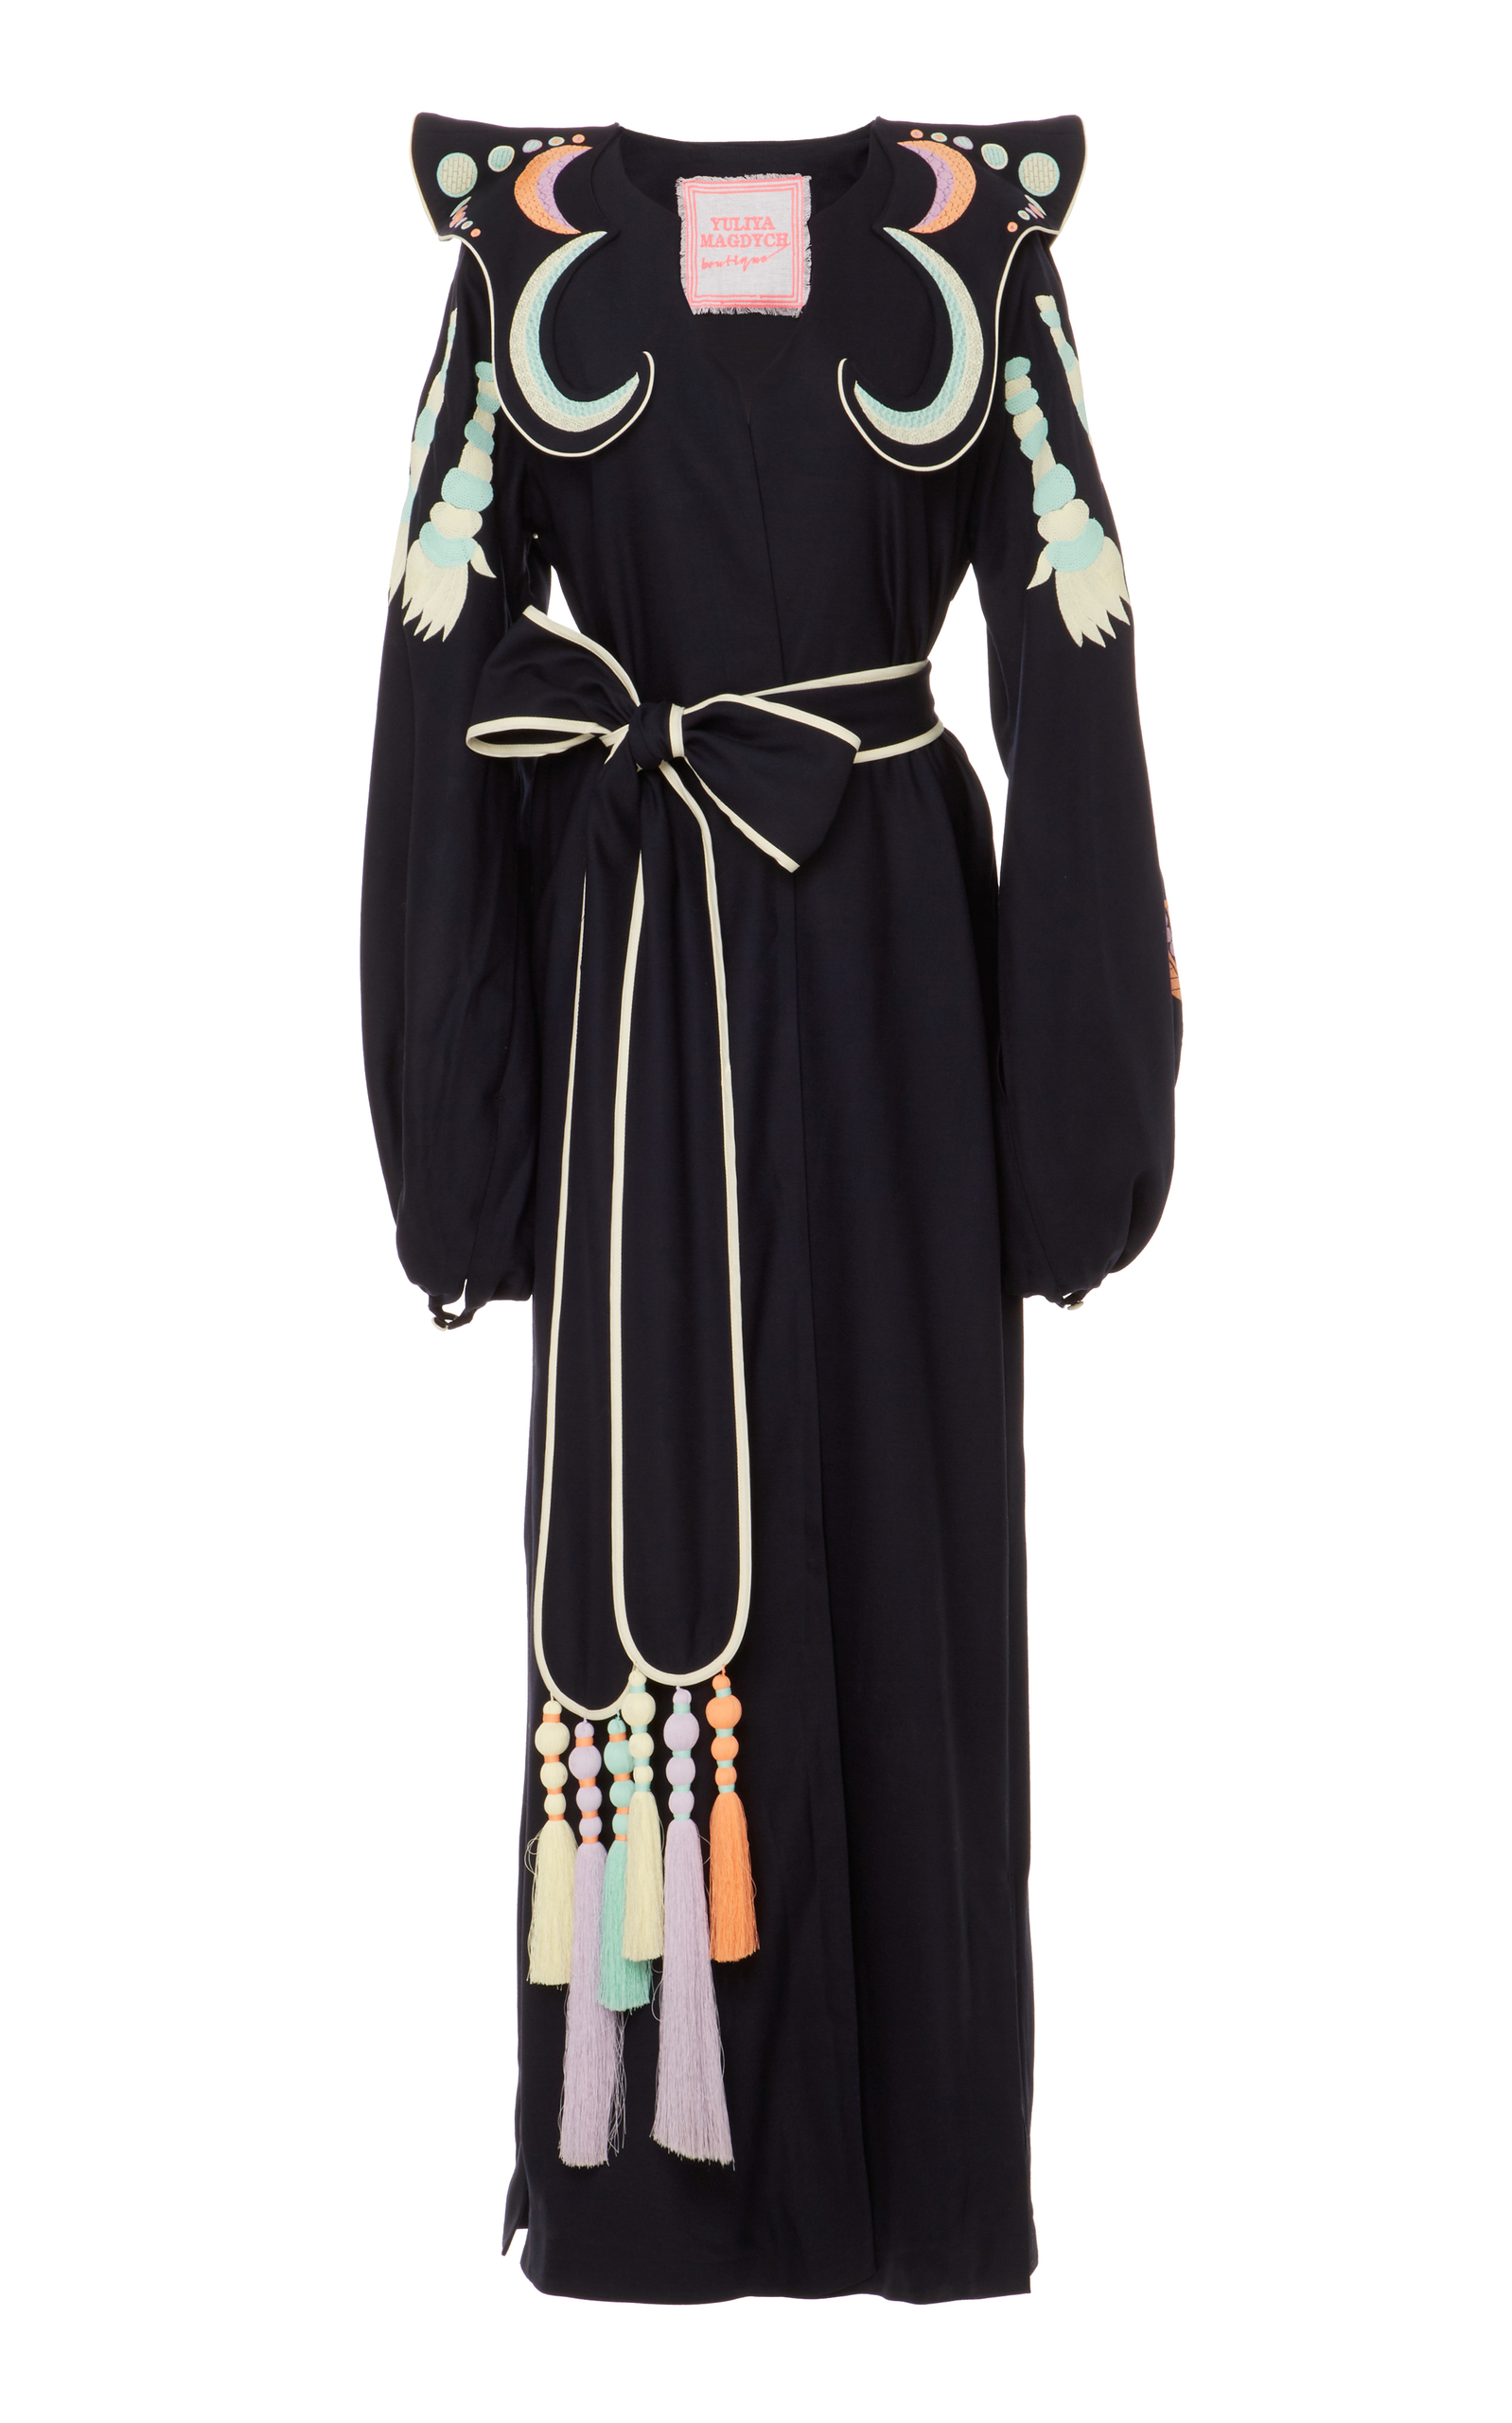 Dayspring Horse embroidered dress - Black Yuliya Magdych